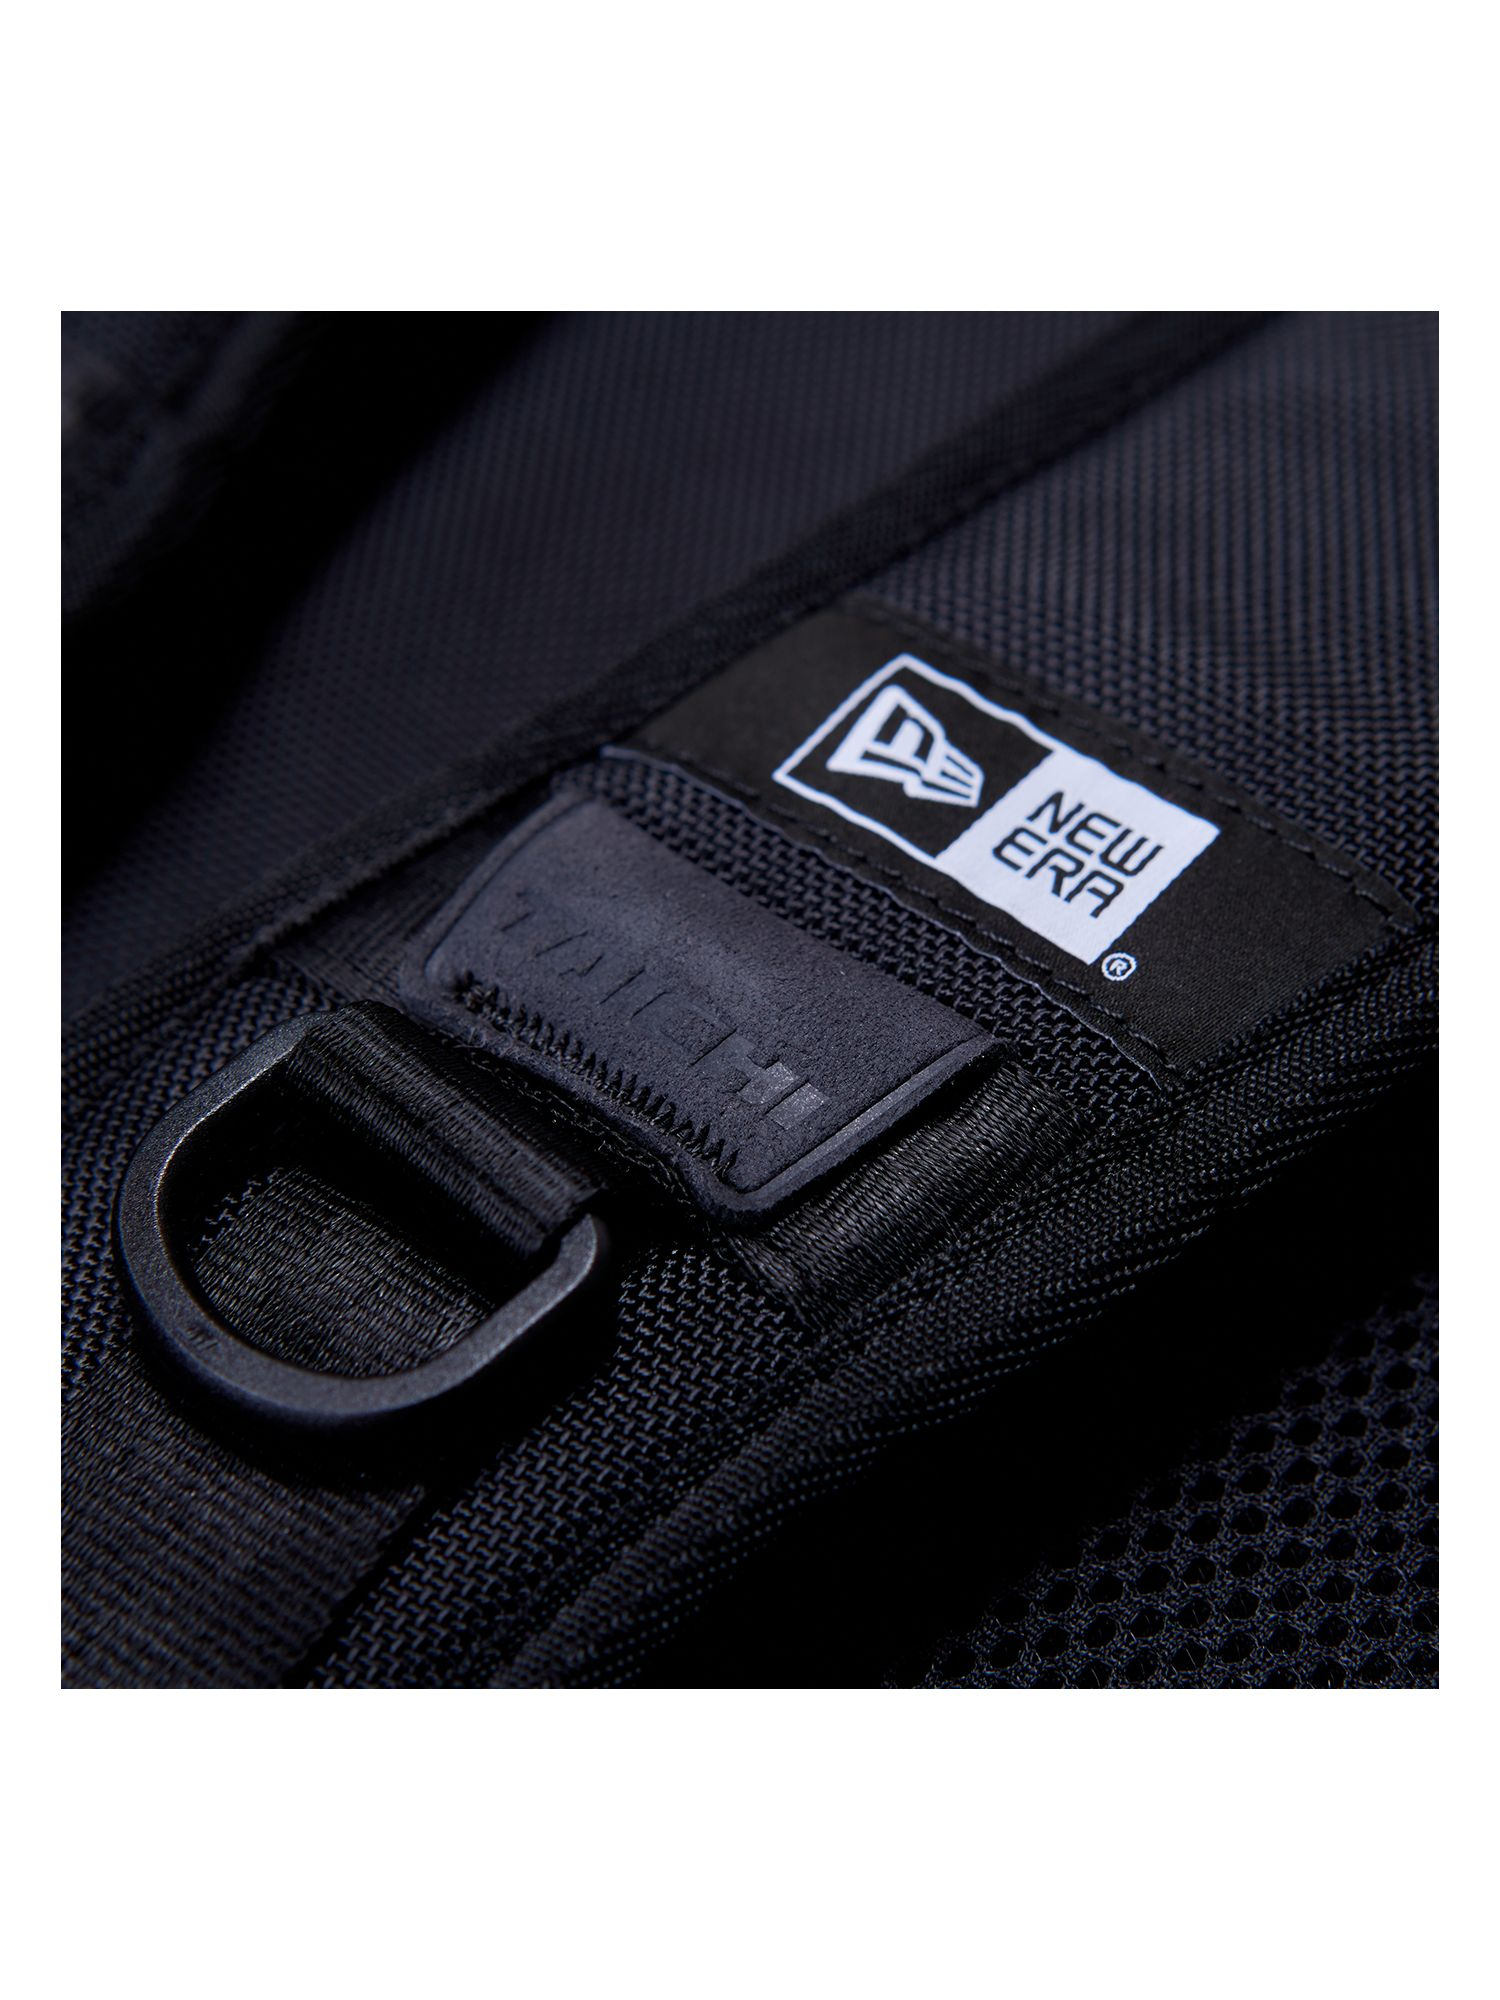 NEB005|CARRIER PACK[1color]